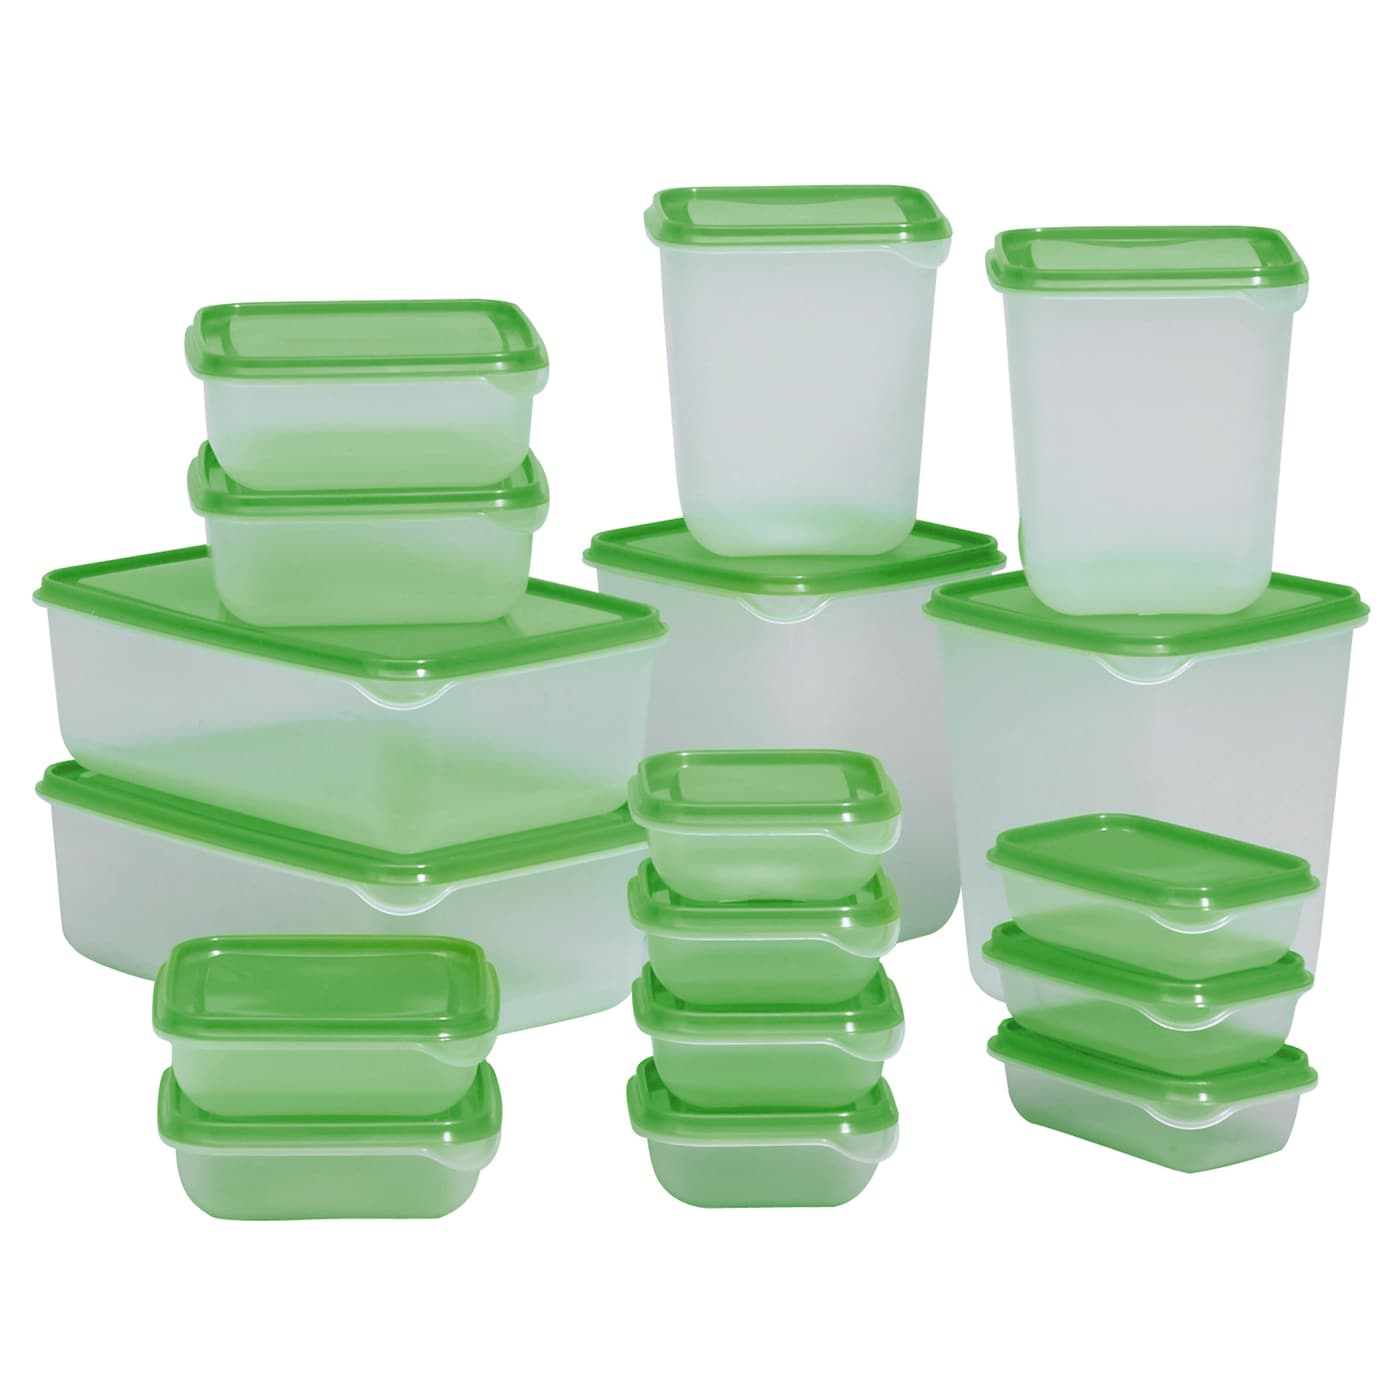 lids containers big plastic colander appealing storage tub xfile of and tubs concept with large pics popular boxes extra